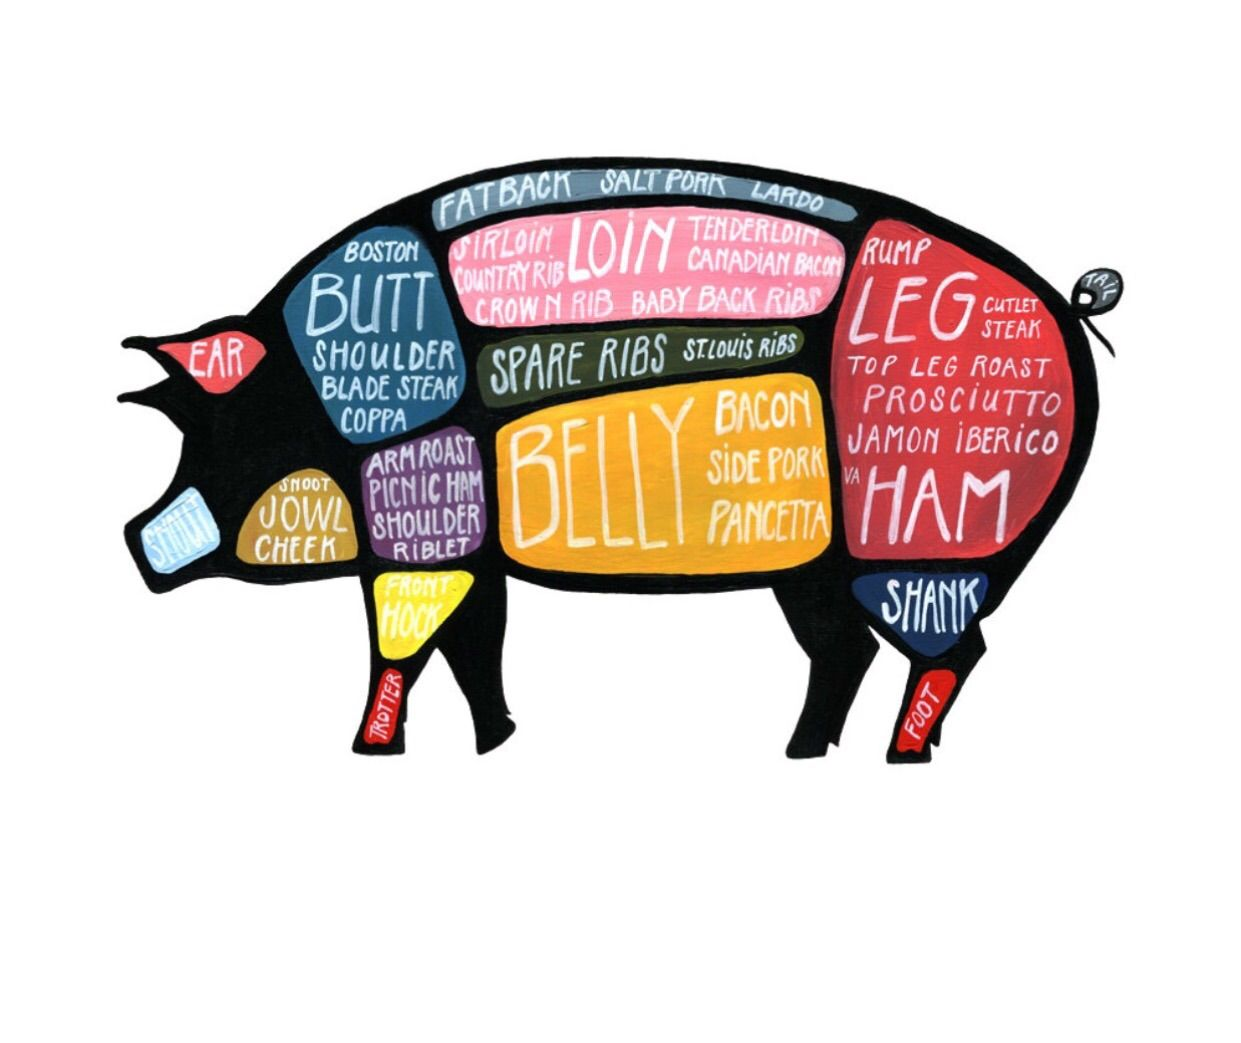 small resolution of pig butcher diagram use every part of the pig detailed cuts of use every part pig diagram